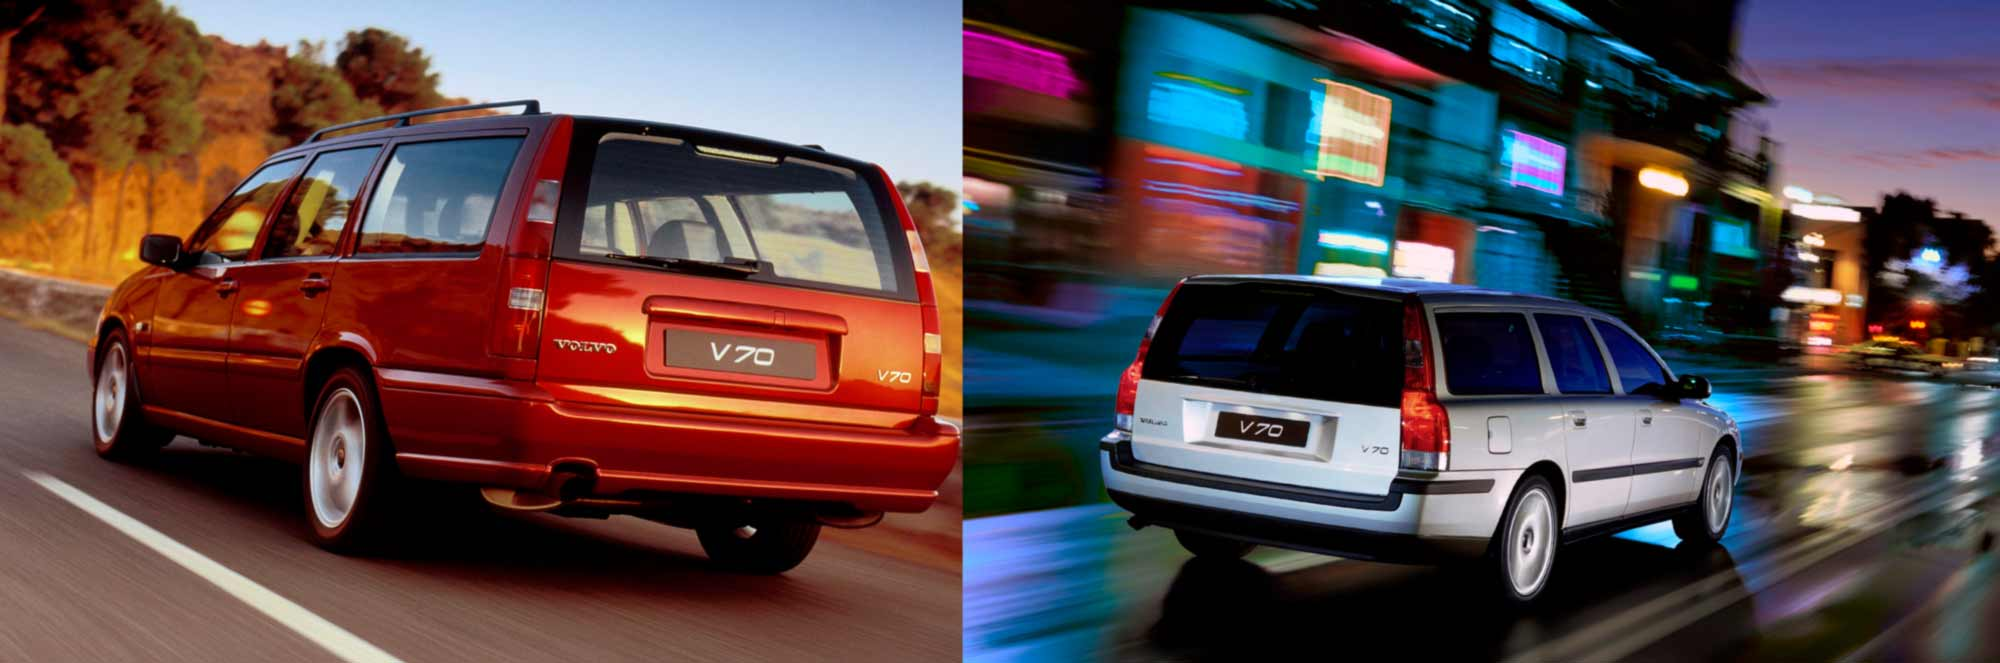 Volvo V70 - Years, Body Styles, Features, Options and Information